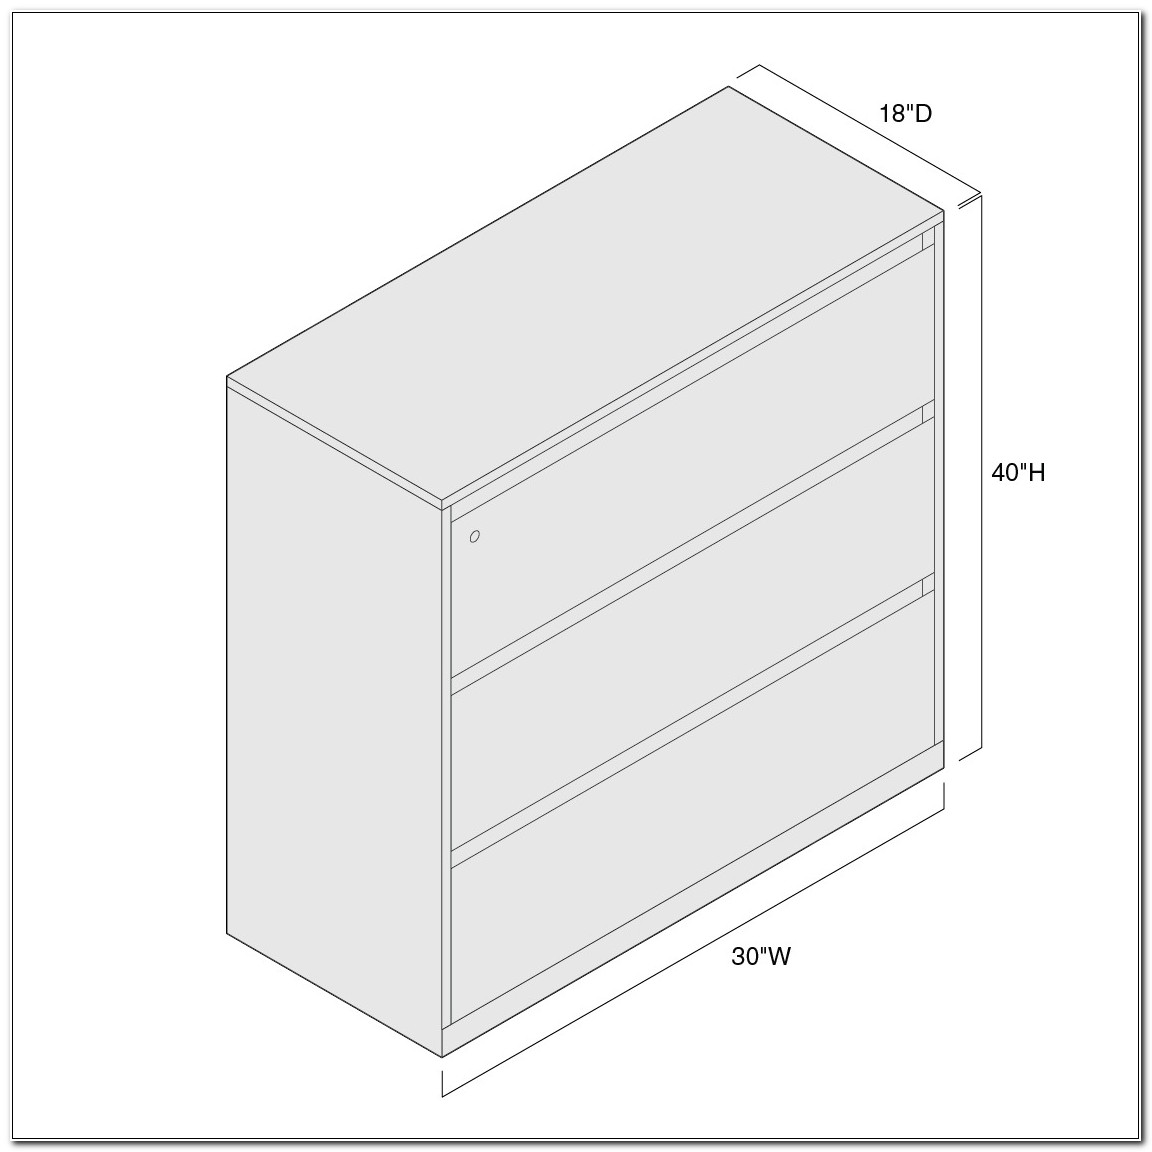 3 Drawer Lateral Filing Cabinet Dimensions